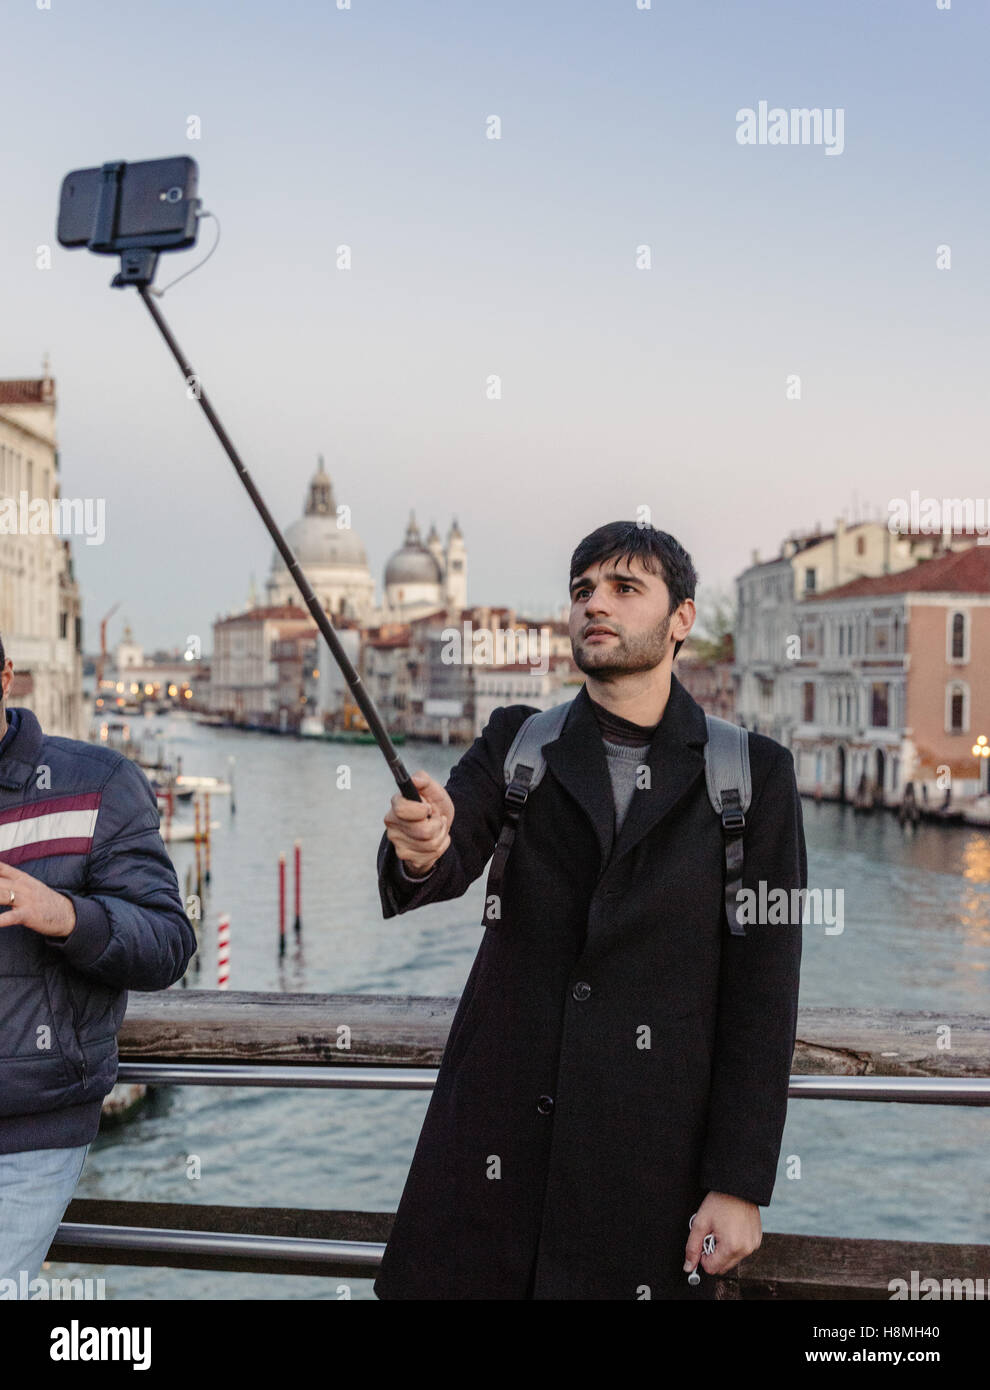 a-young-man-is-taking-a-selfie-in-venice-a-popular-tourist-destination-H8MH40.jpg